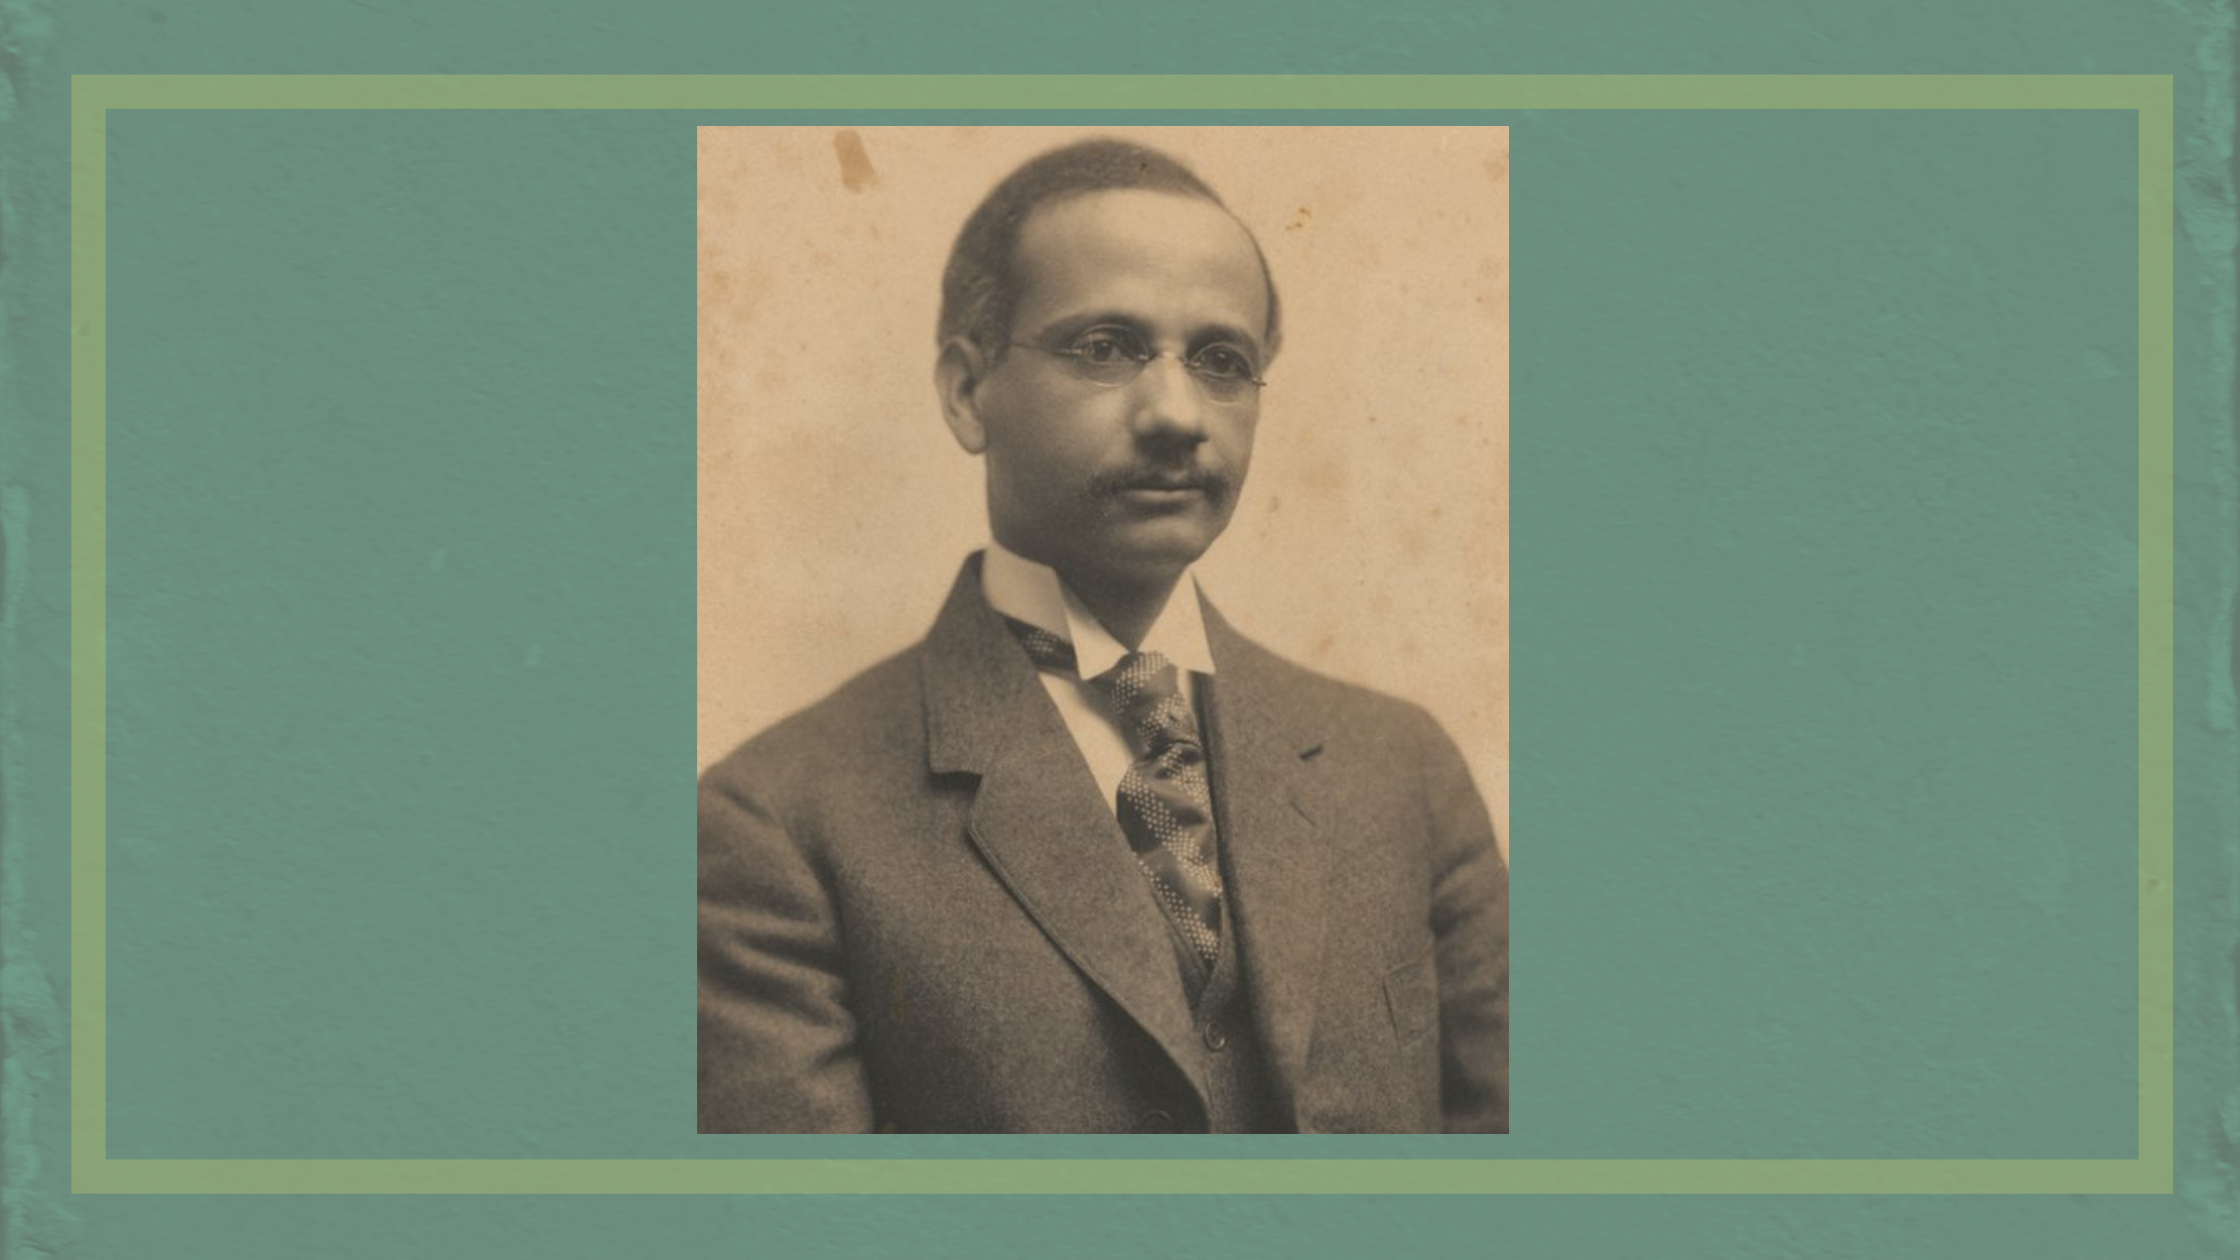 Dr. Solomon Carter Fuller on dark sea green background with a light green outline.